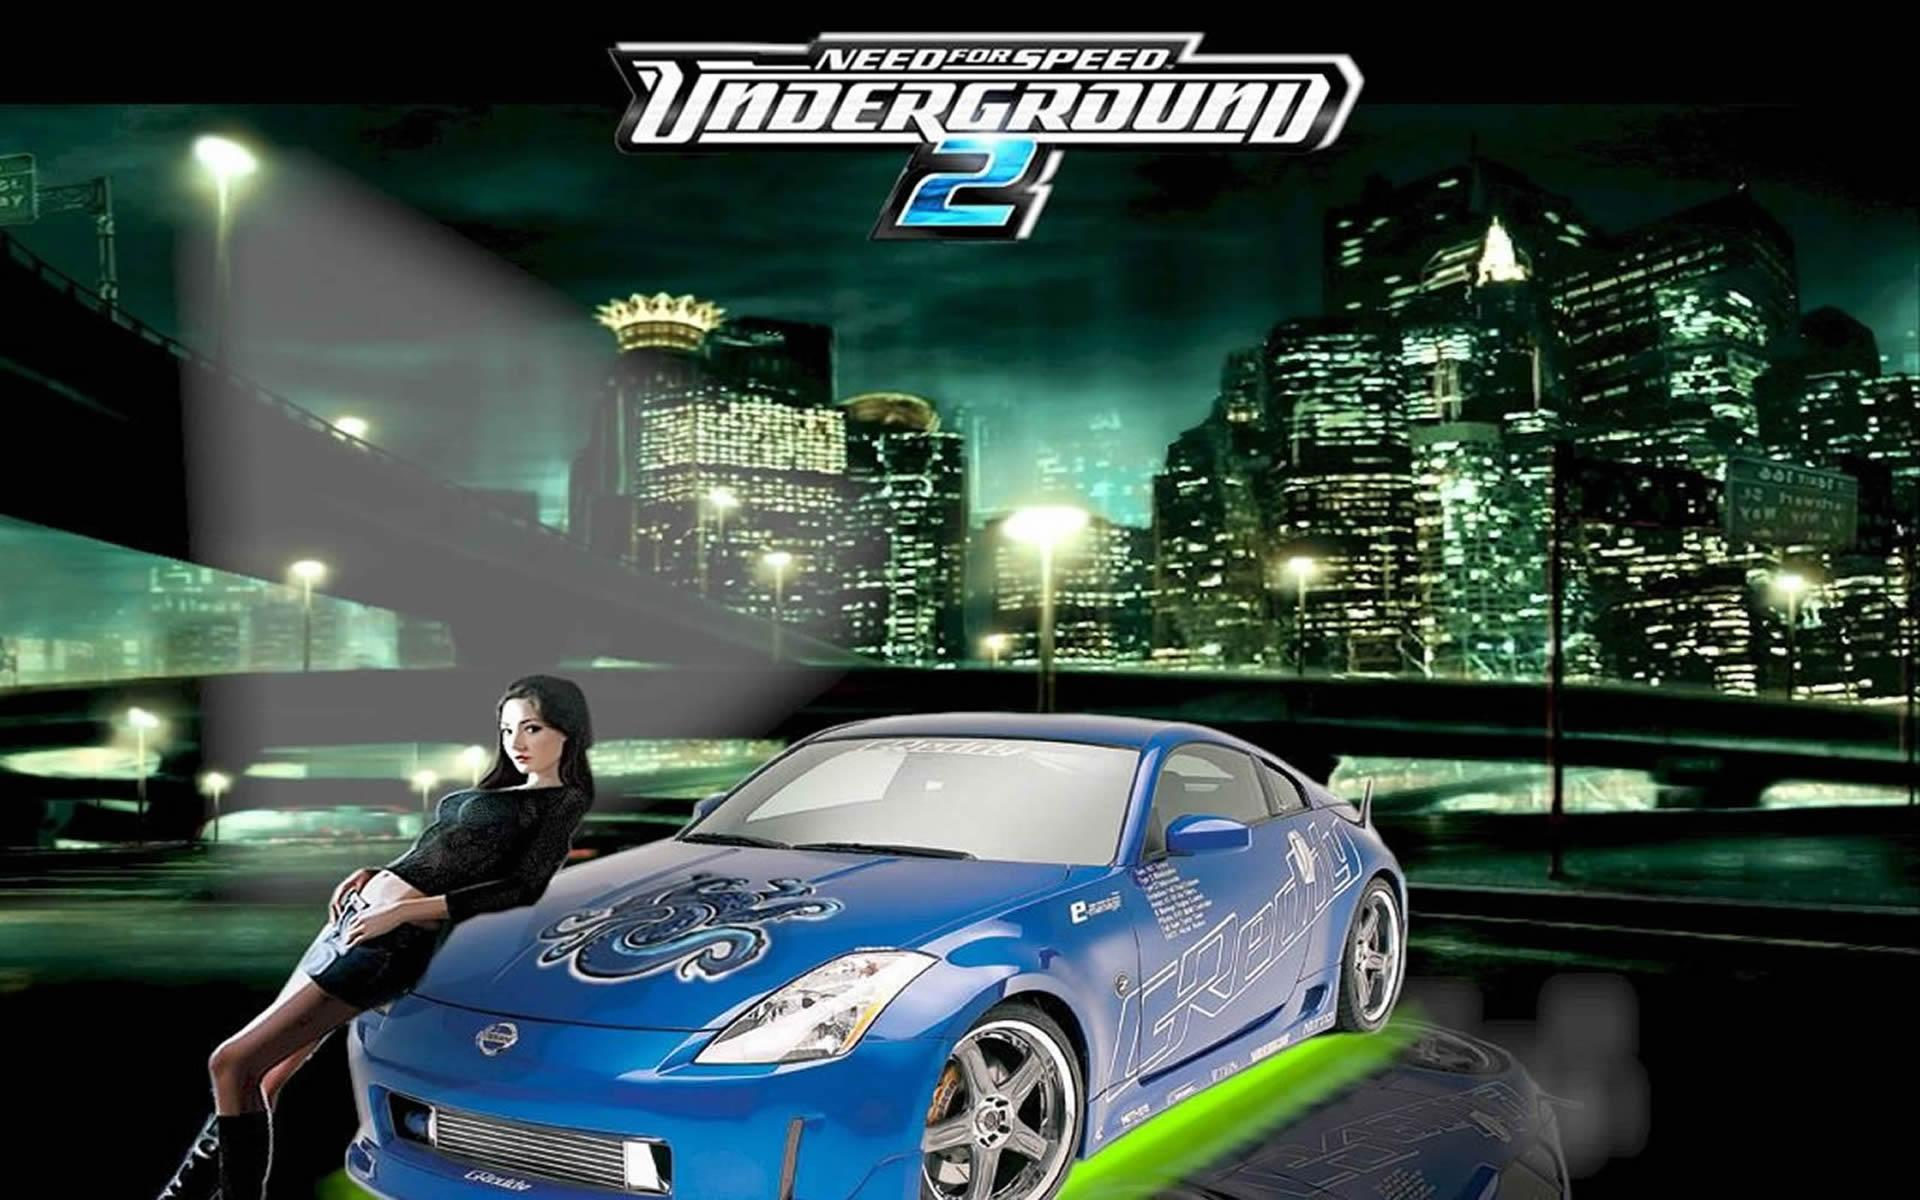 Need for speed underground 2 wallpapers wallpaper cave - Need for speed underground 1 wallpaper ...